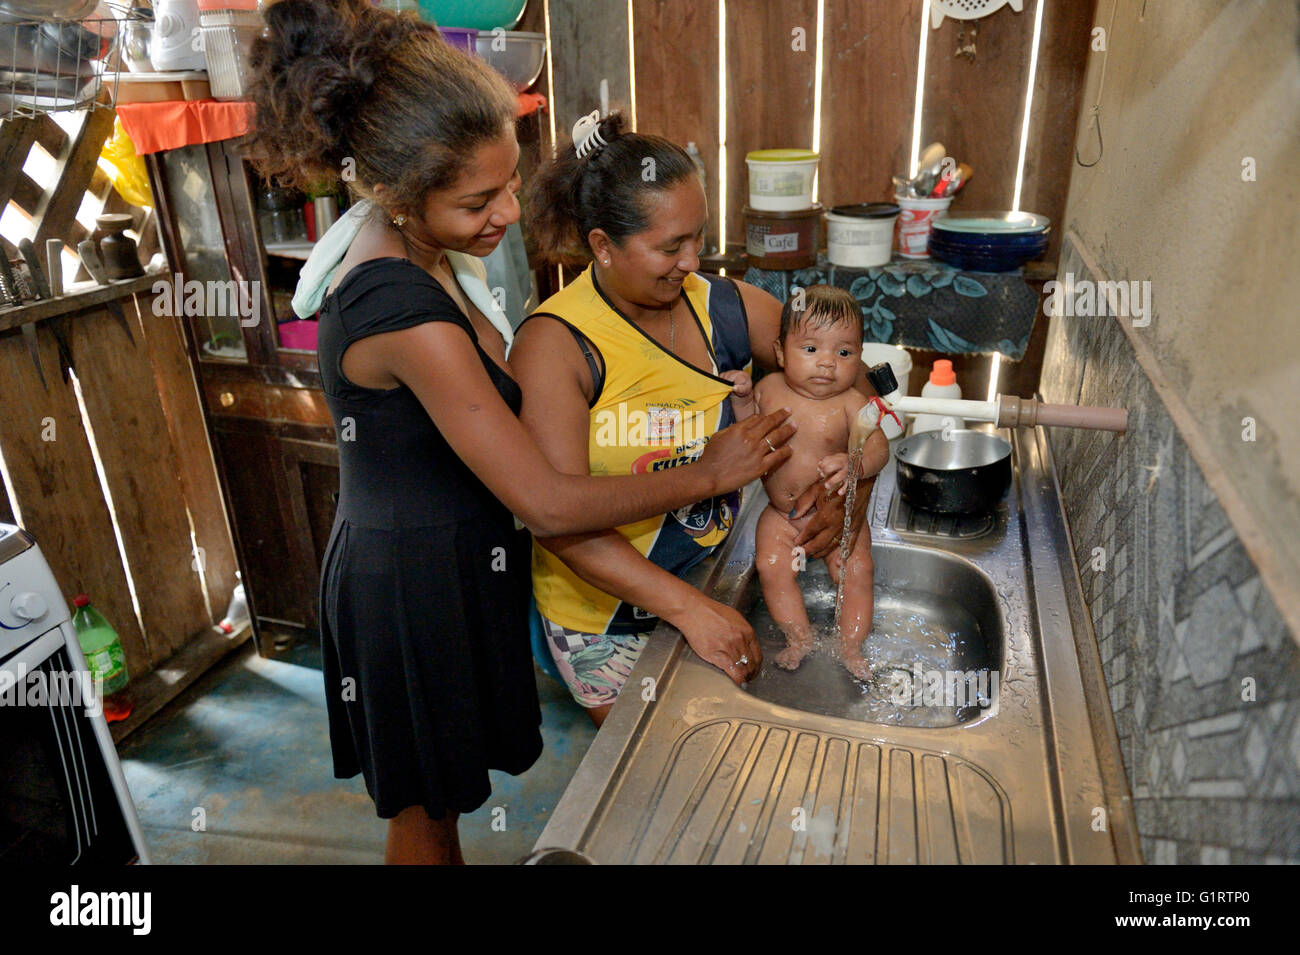 Women washing a baby in the sink of a kitchen, fishing village Pimental, district Itaituba, Pará state, Brazil - Stock Image